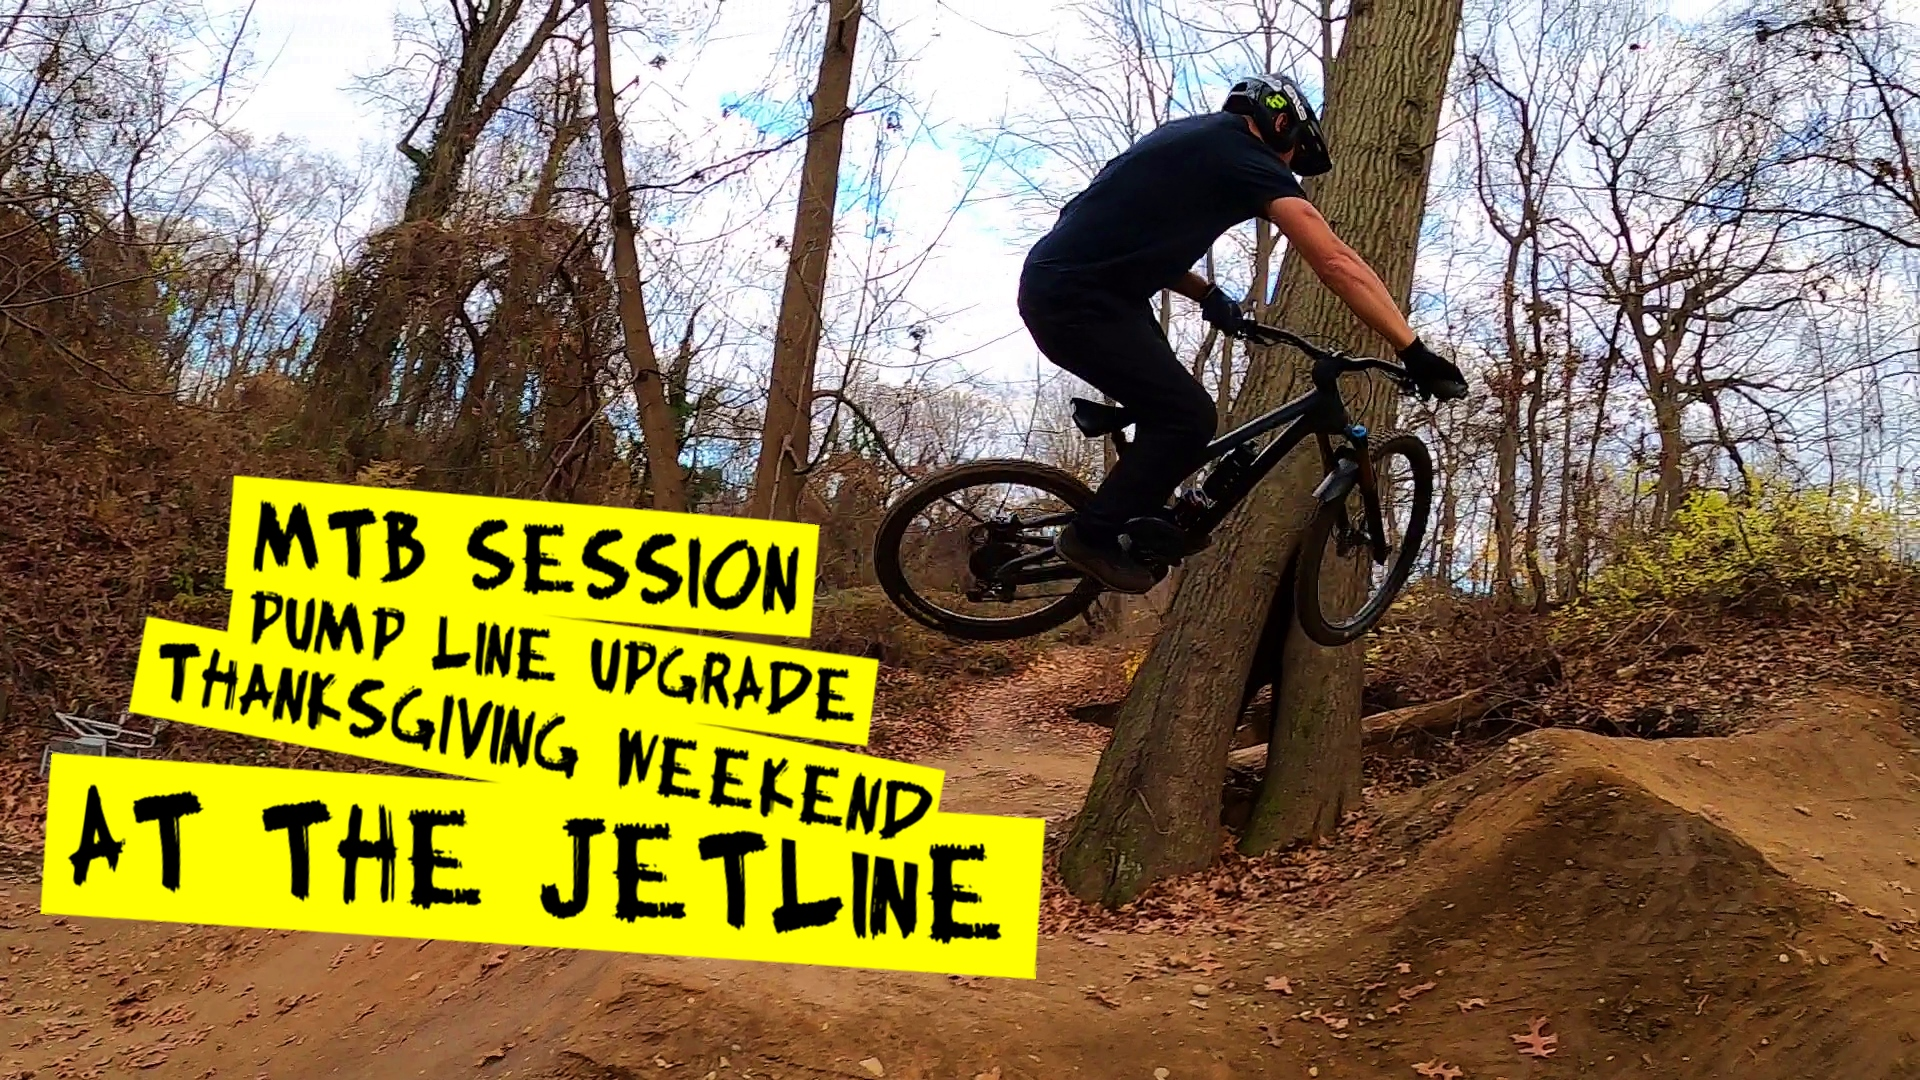 Jetline Thanksgiving MTB Session